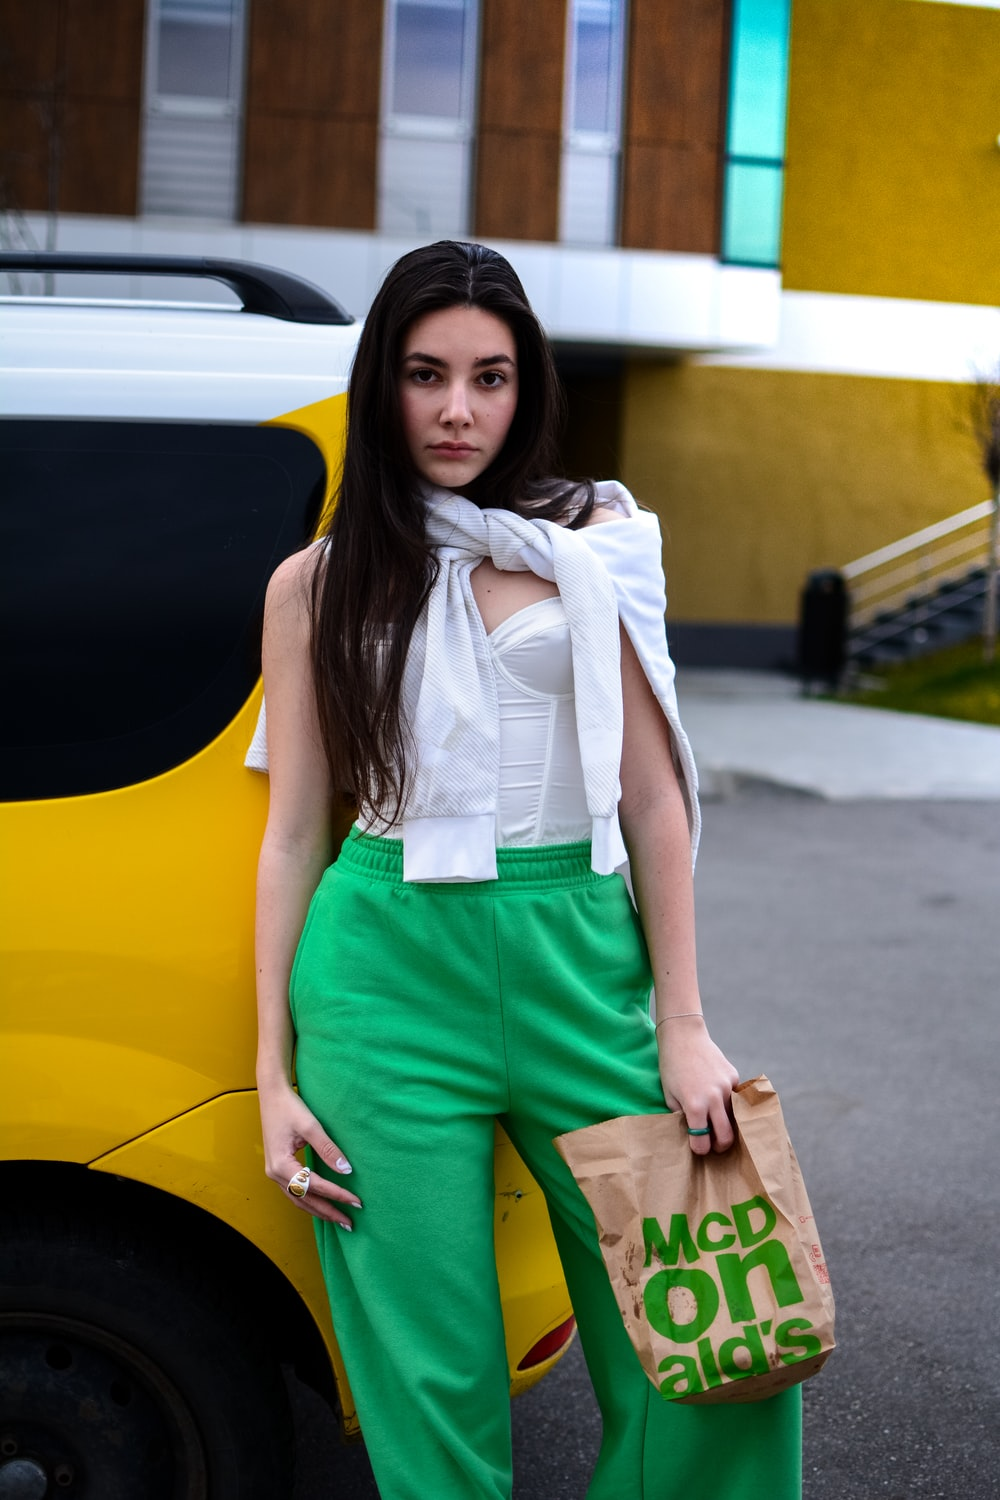 woman in white shirt and green shorts standing beside yellow car